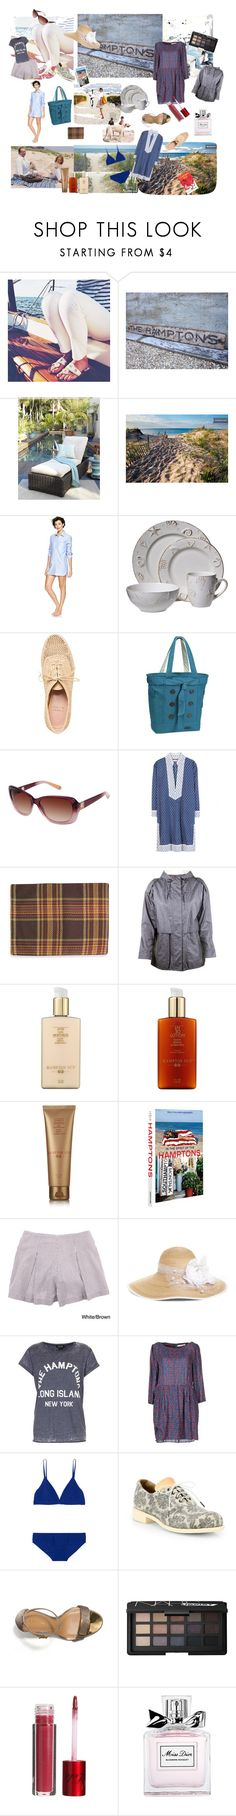 """""""Weeck-end at the Hamptons"""" by nathalie-puex ❤ liked on Polyvore featuring Vince Camuto, Gap, Stuart Weitzman, OGIO, Sperry, Tory Burch, Steven Alan, Hampton Sun, Assouline Publishing and American Apparel"""